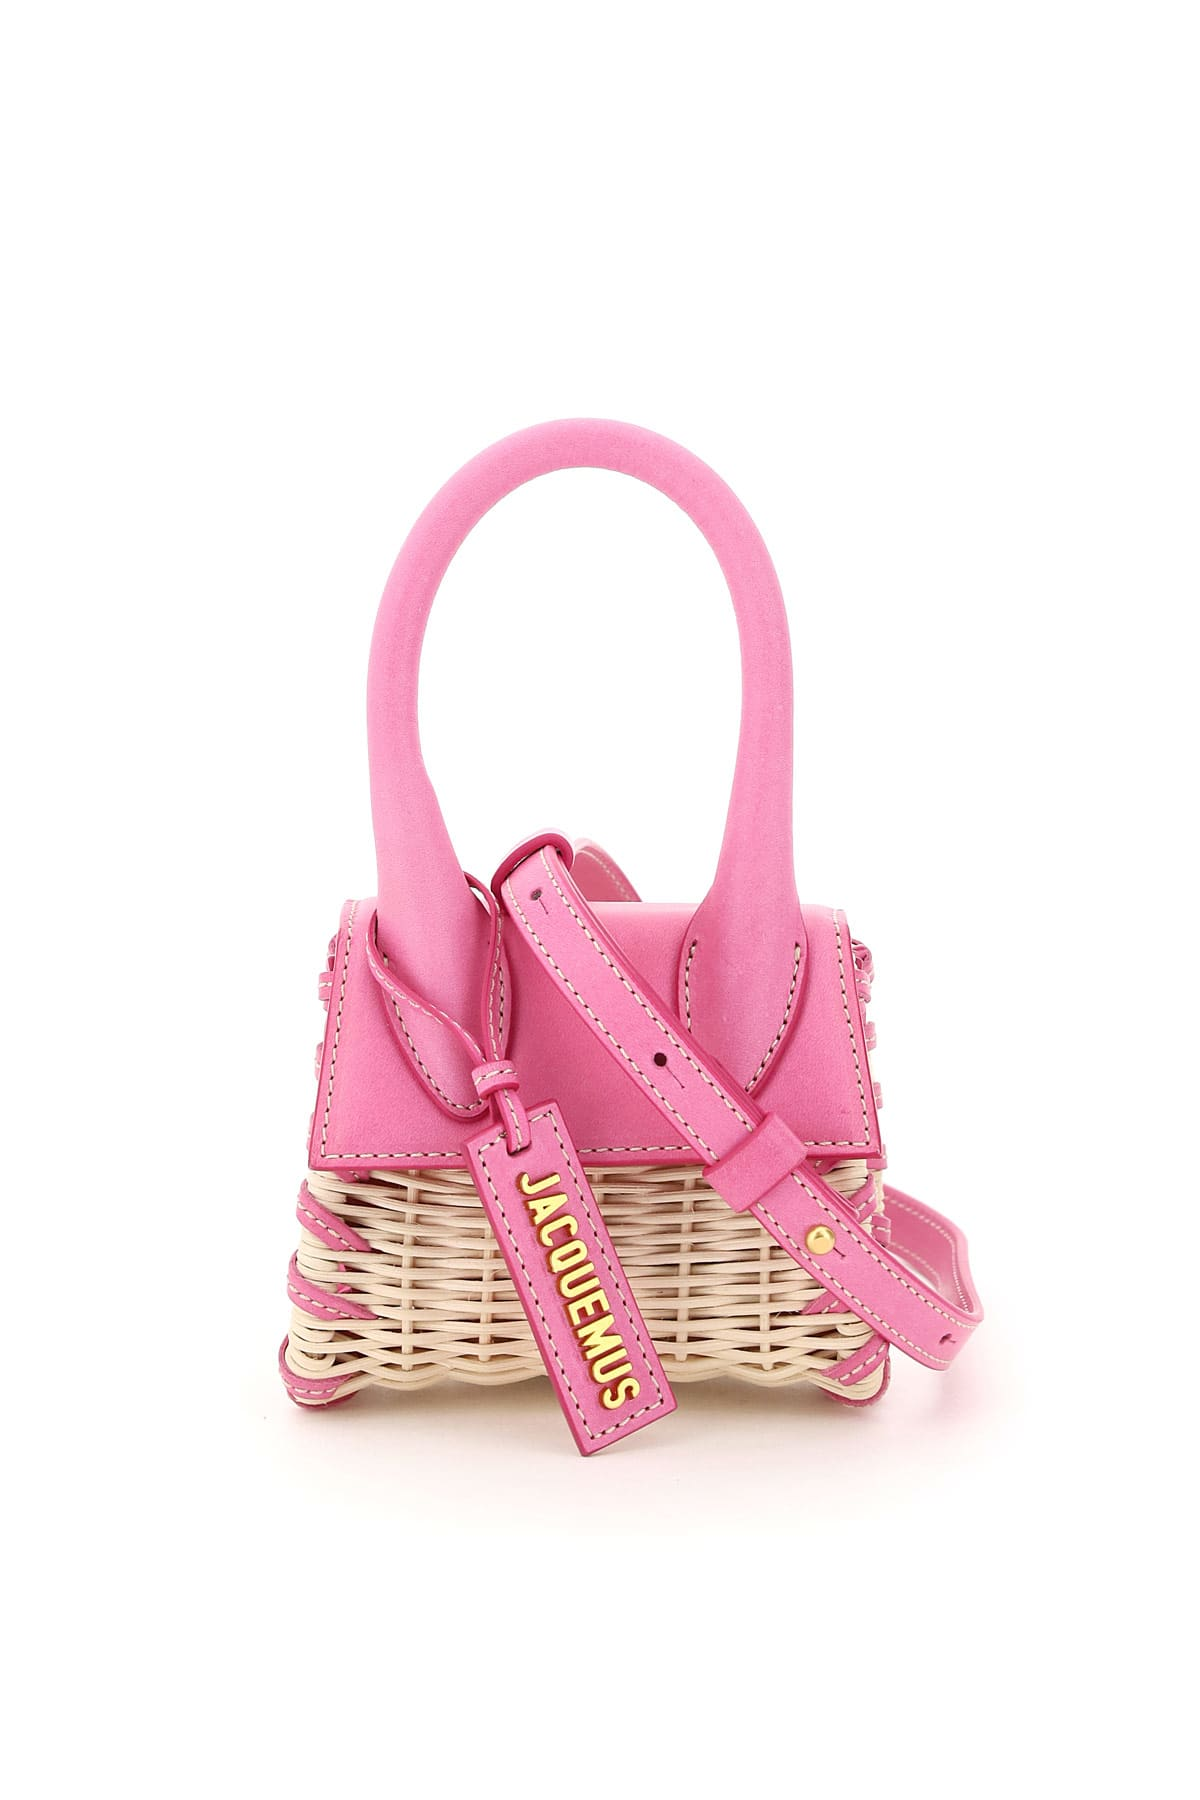 Jacquemus LE CHIQUITO WICKER AND LEATHER MICRO BAG